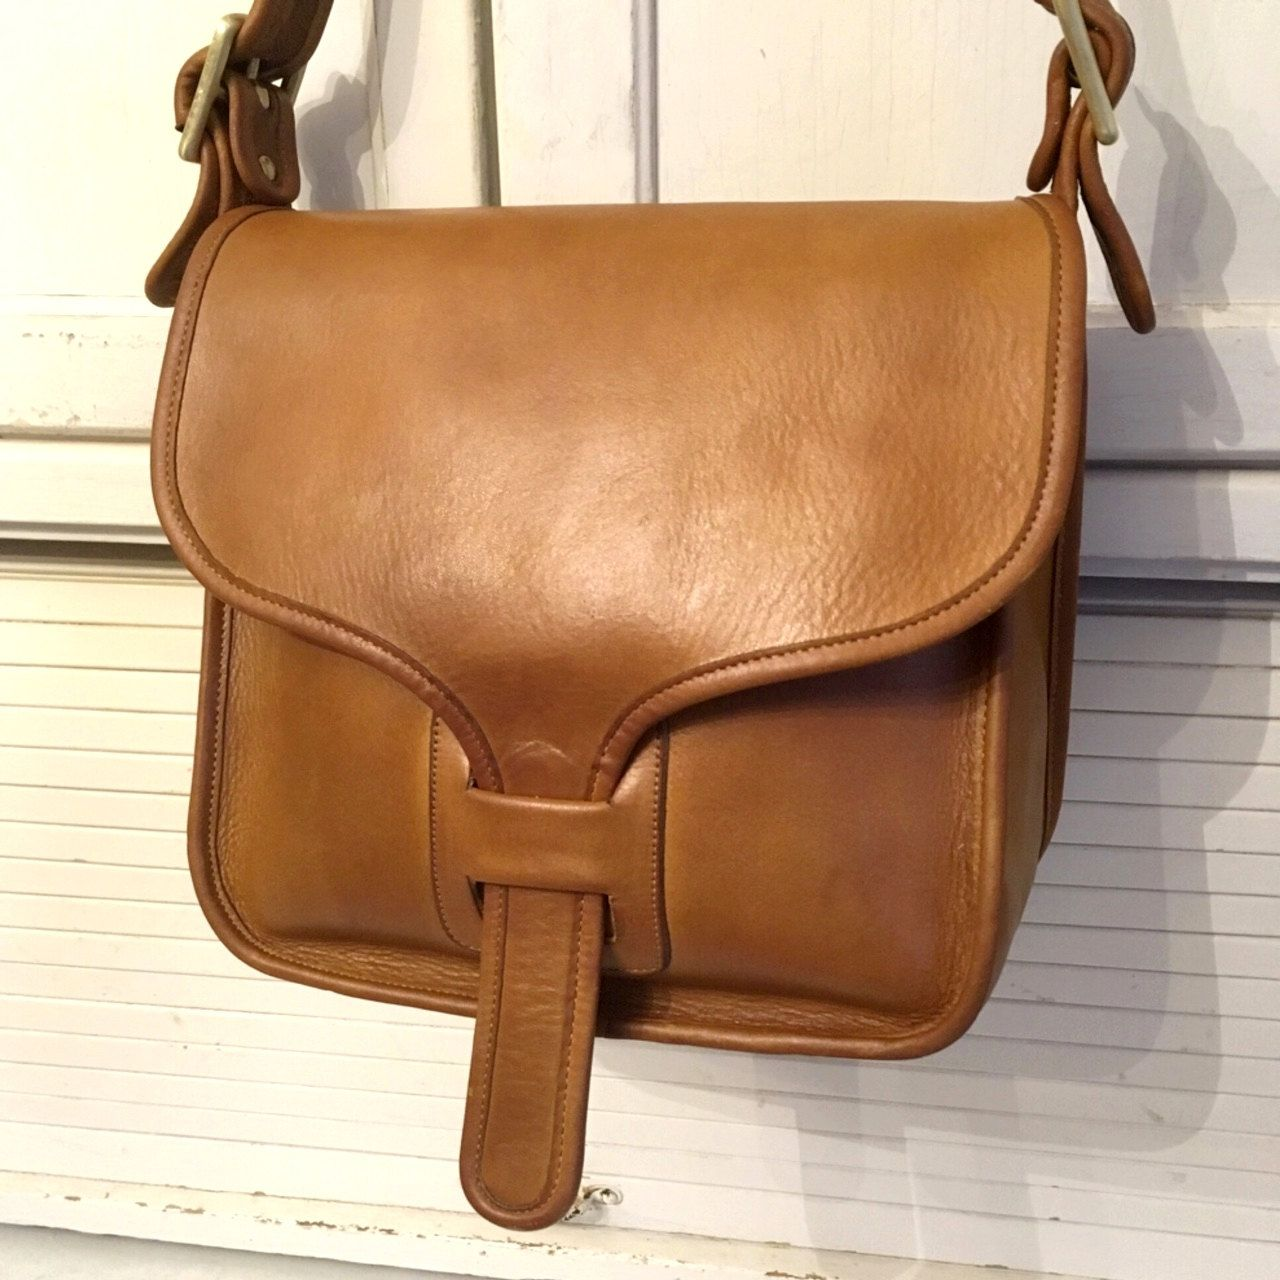 Vintage Coach Courier Pouch - Tabac Tan - Made in New York City by  CindysCoachCloset on 035d1e3ad8173